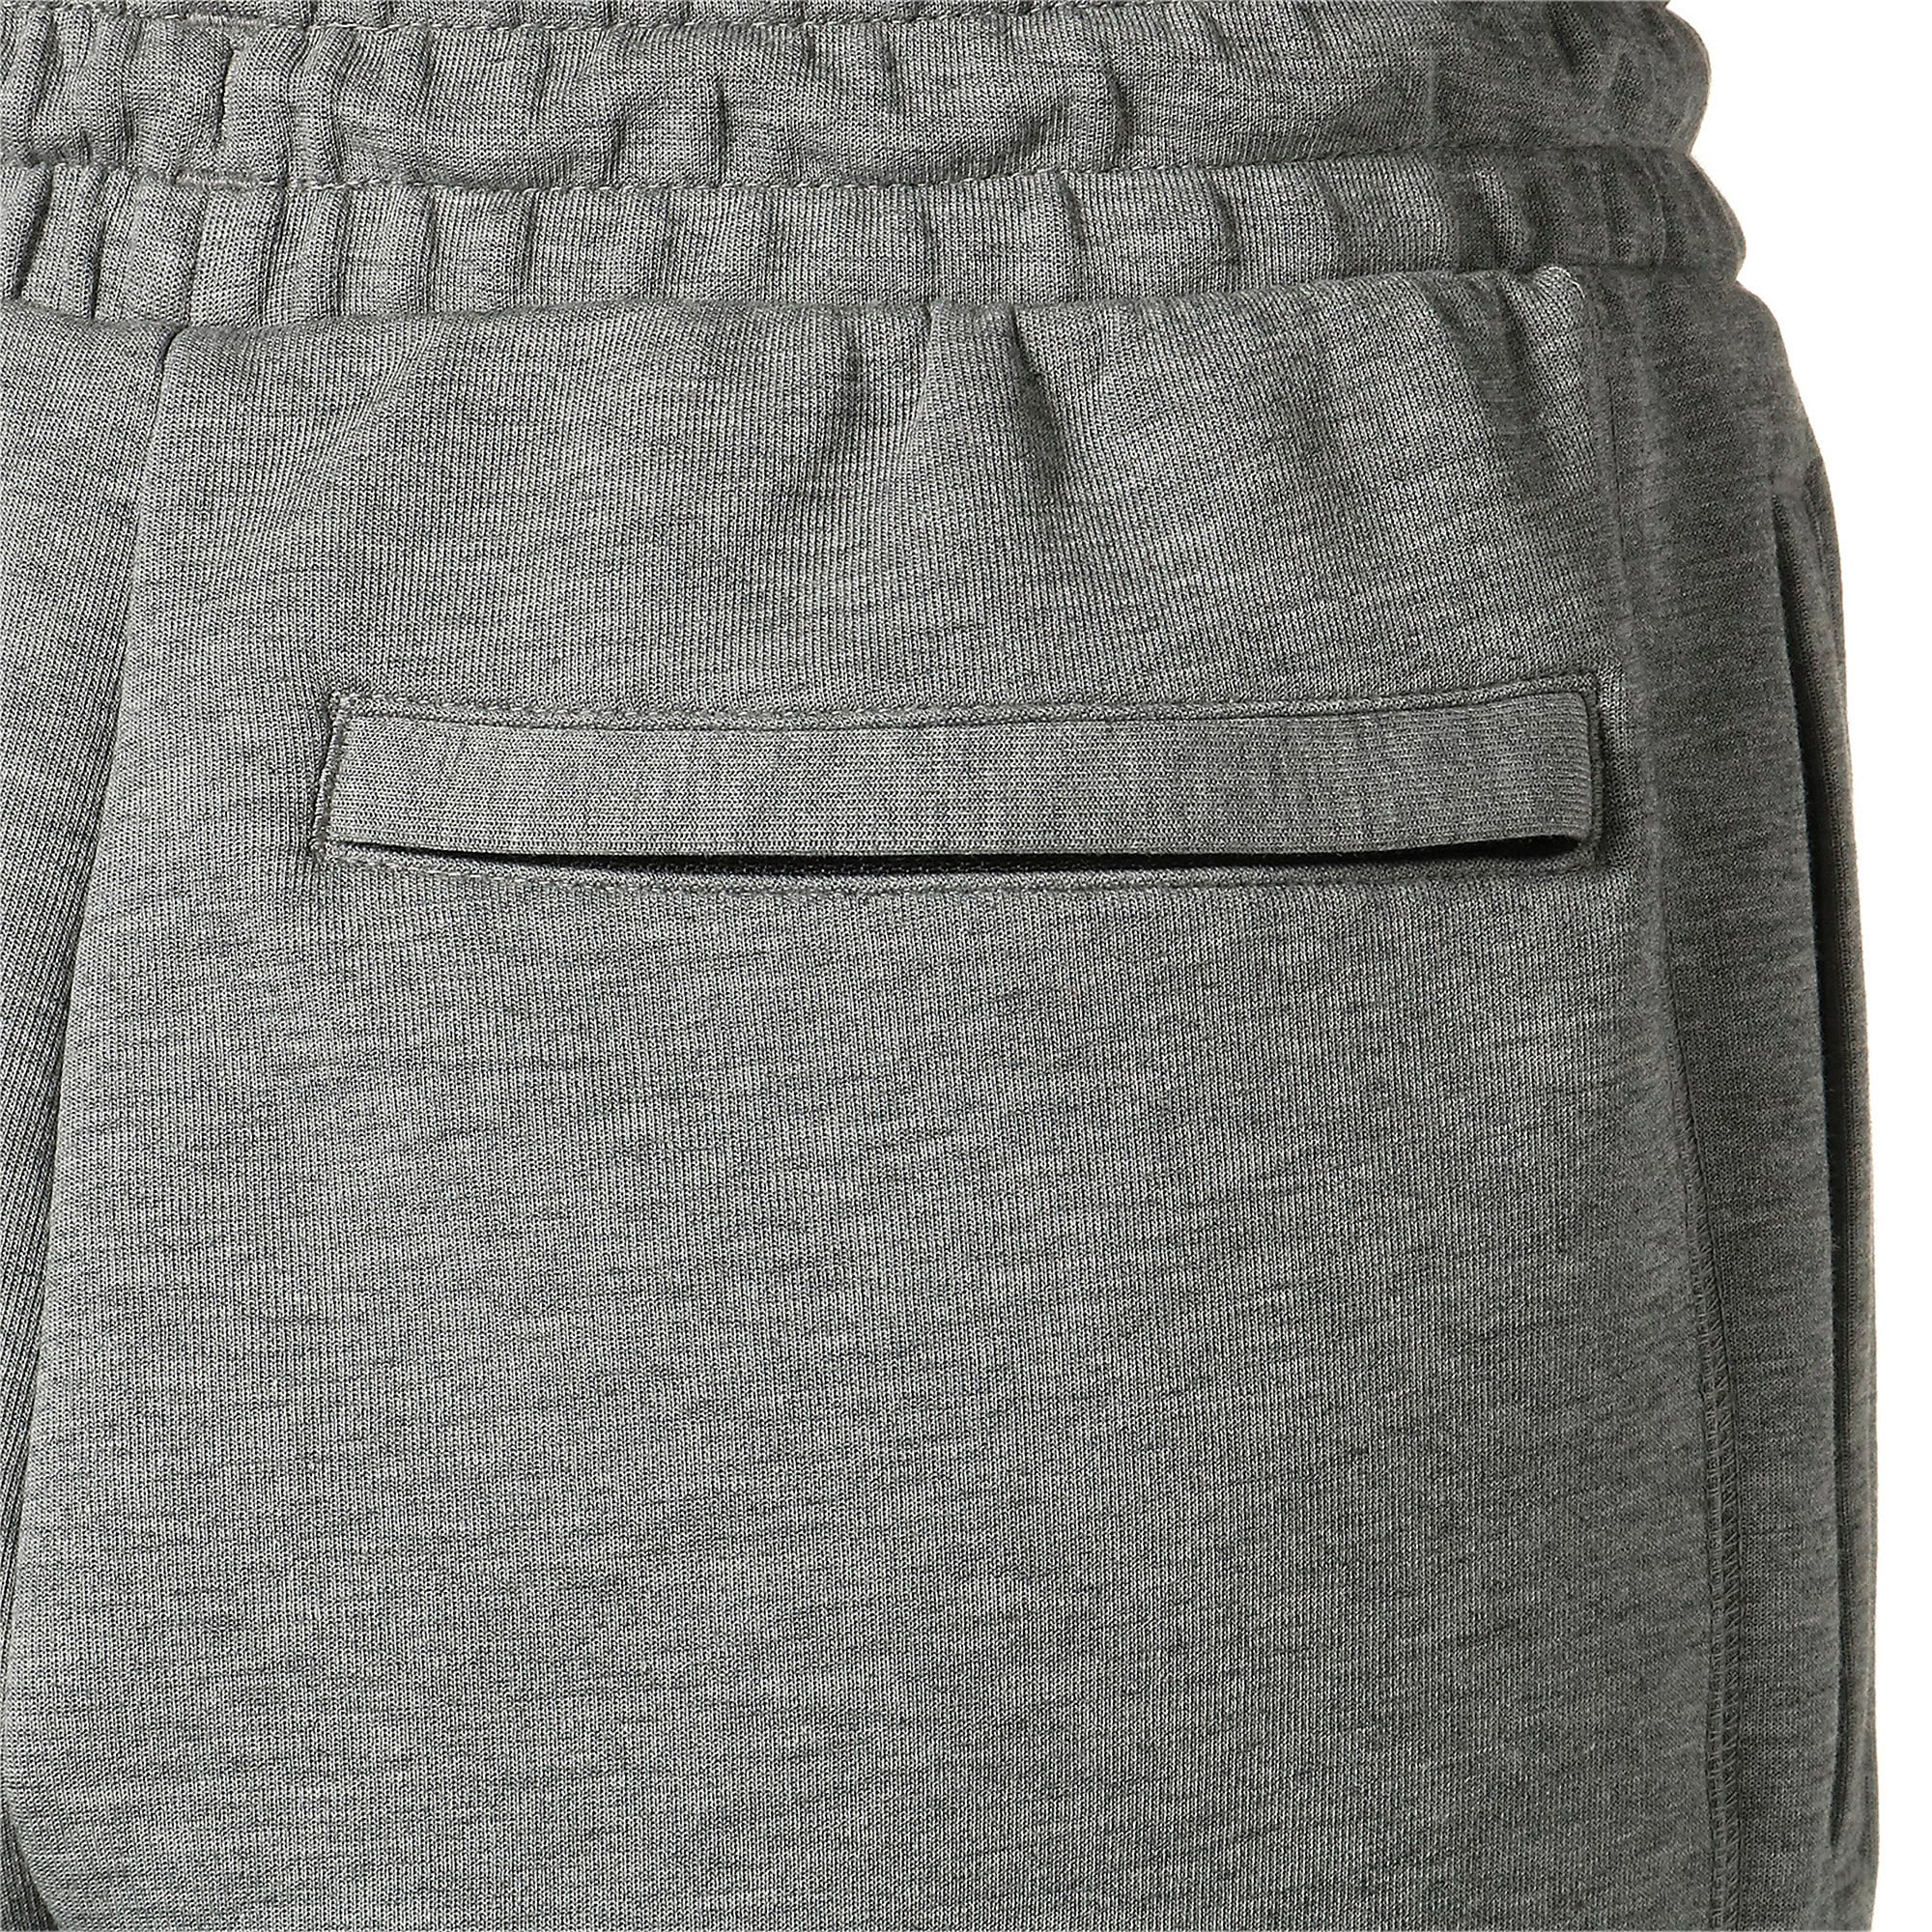 Thumbnail 11 of EPOCH パンツ, Medium Gray Heather, medium-JPN